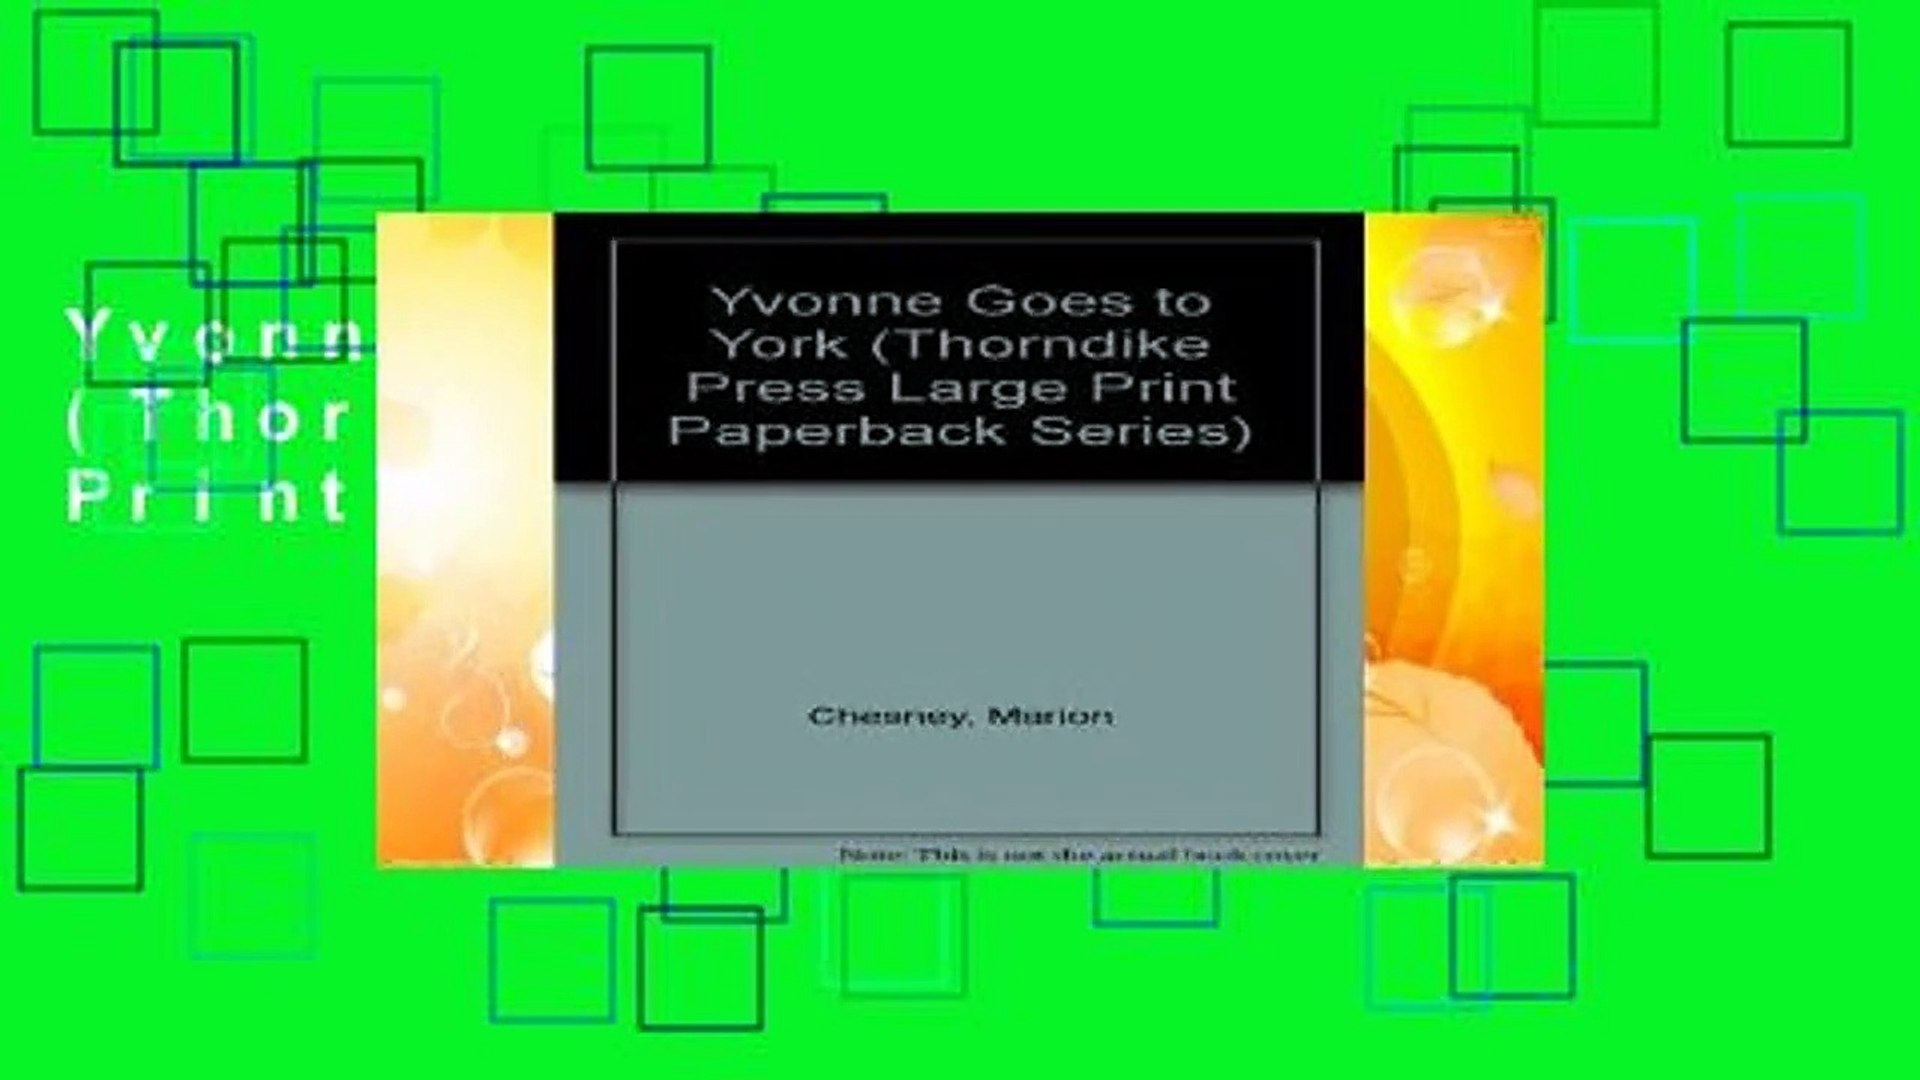 Yvonne Goes to York (Thorndike Press Large Print Paperback Series)